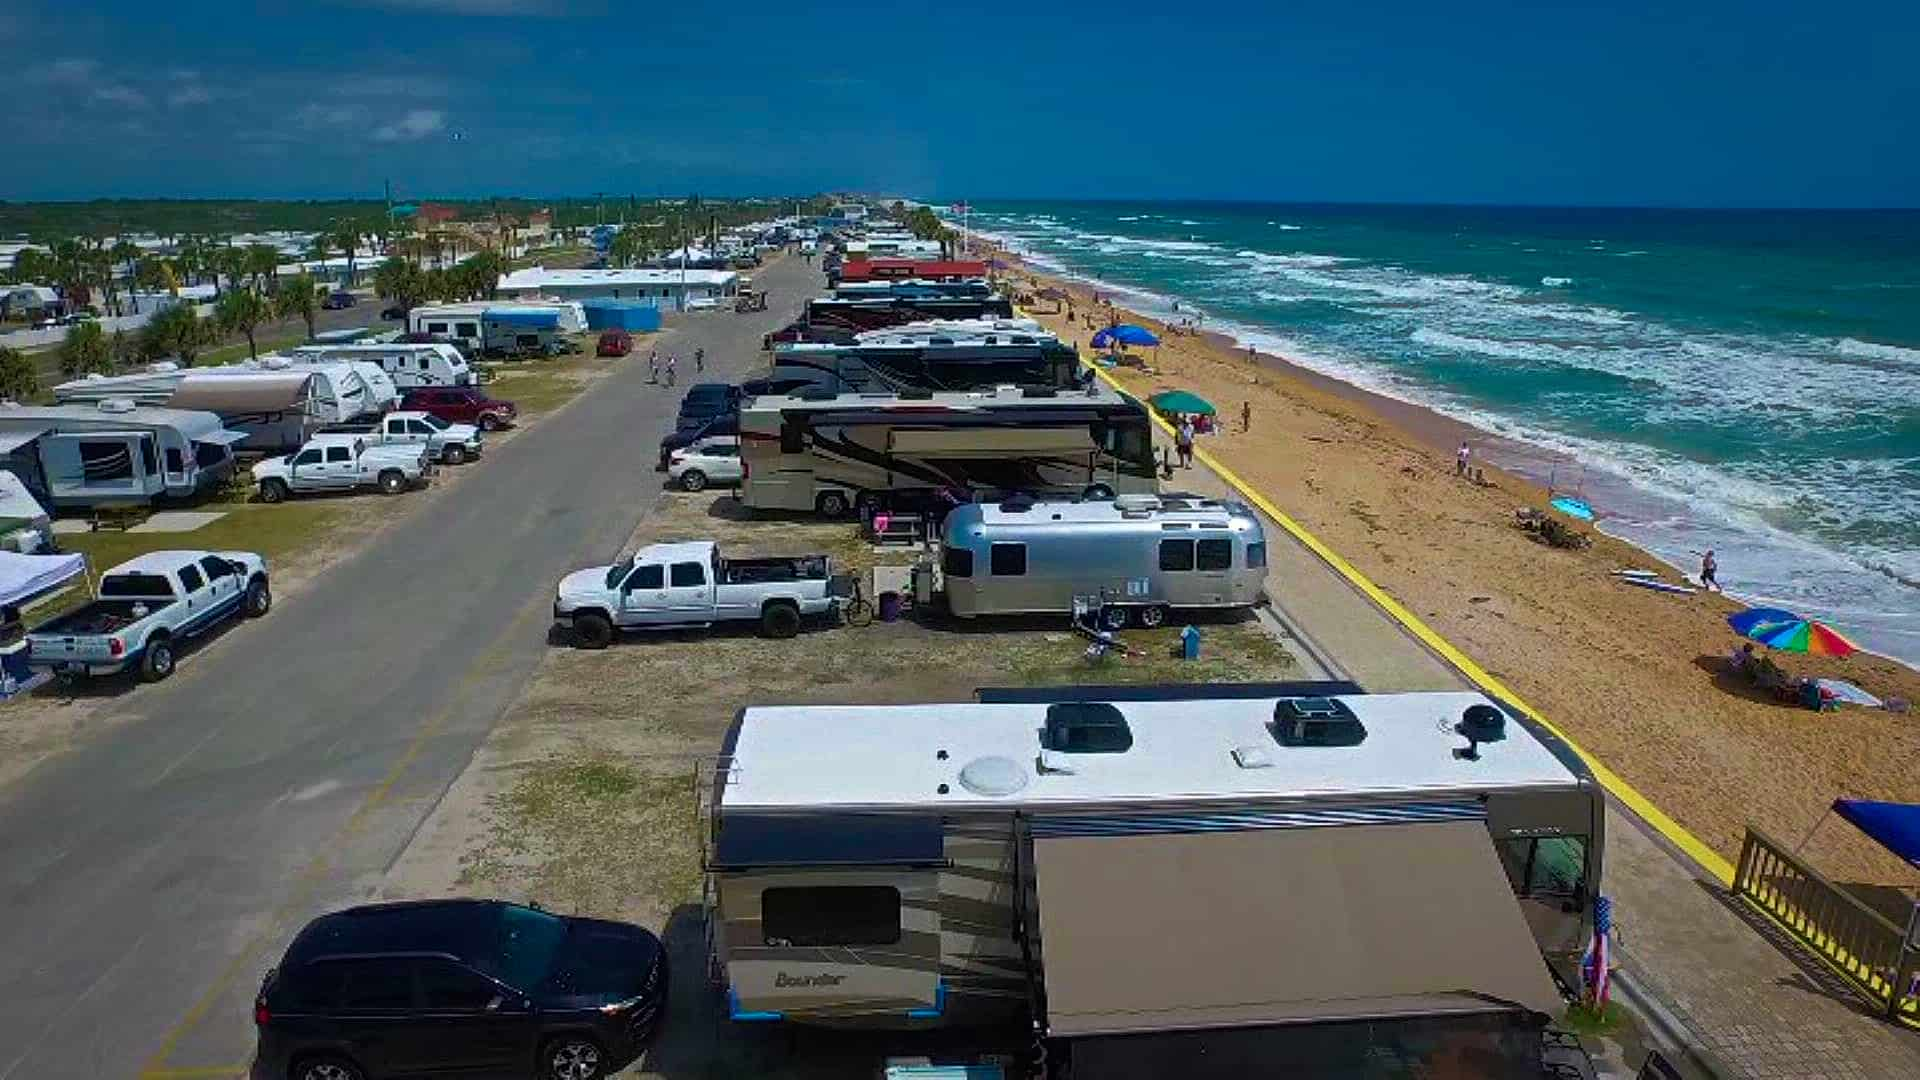 Best Beach Campgrounds & RV Parks in Florida for RV Camping ... on camp cherry valley, camp columbia, camp creek, camp dunlap, camp westwind, camp mason, camp delta, camp jackson, camp belknap, camp polk, camp gordon johnston, camp washington, camp lebanon, camp border,